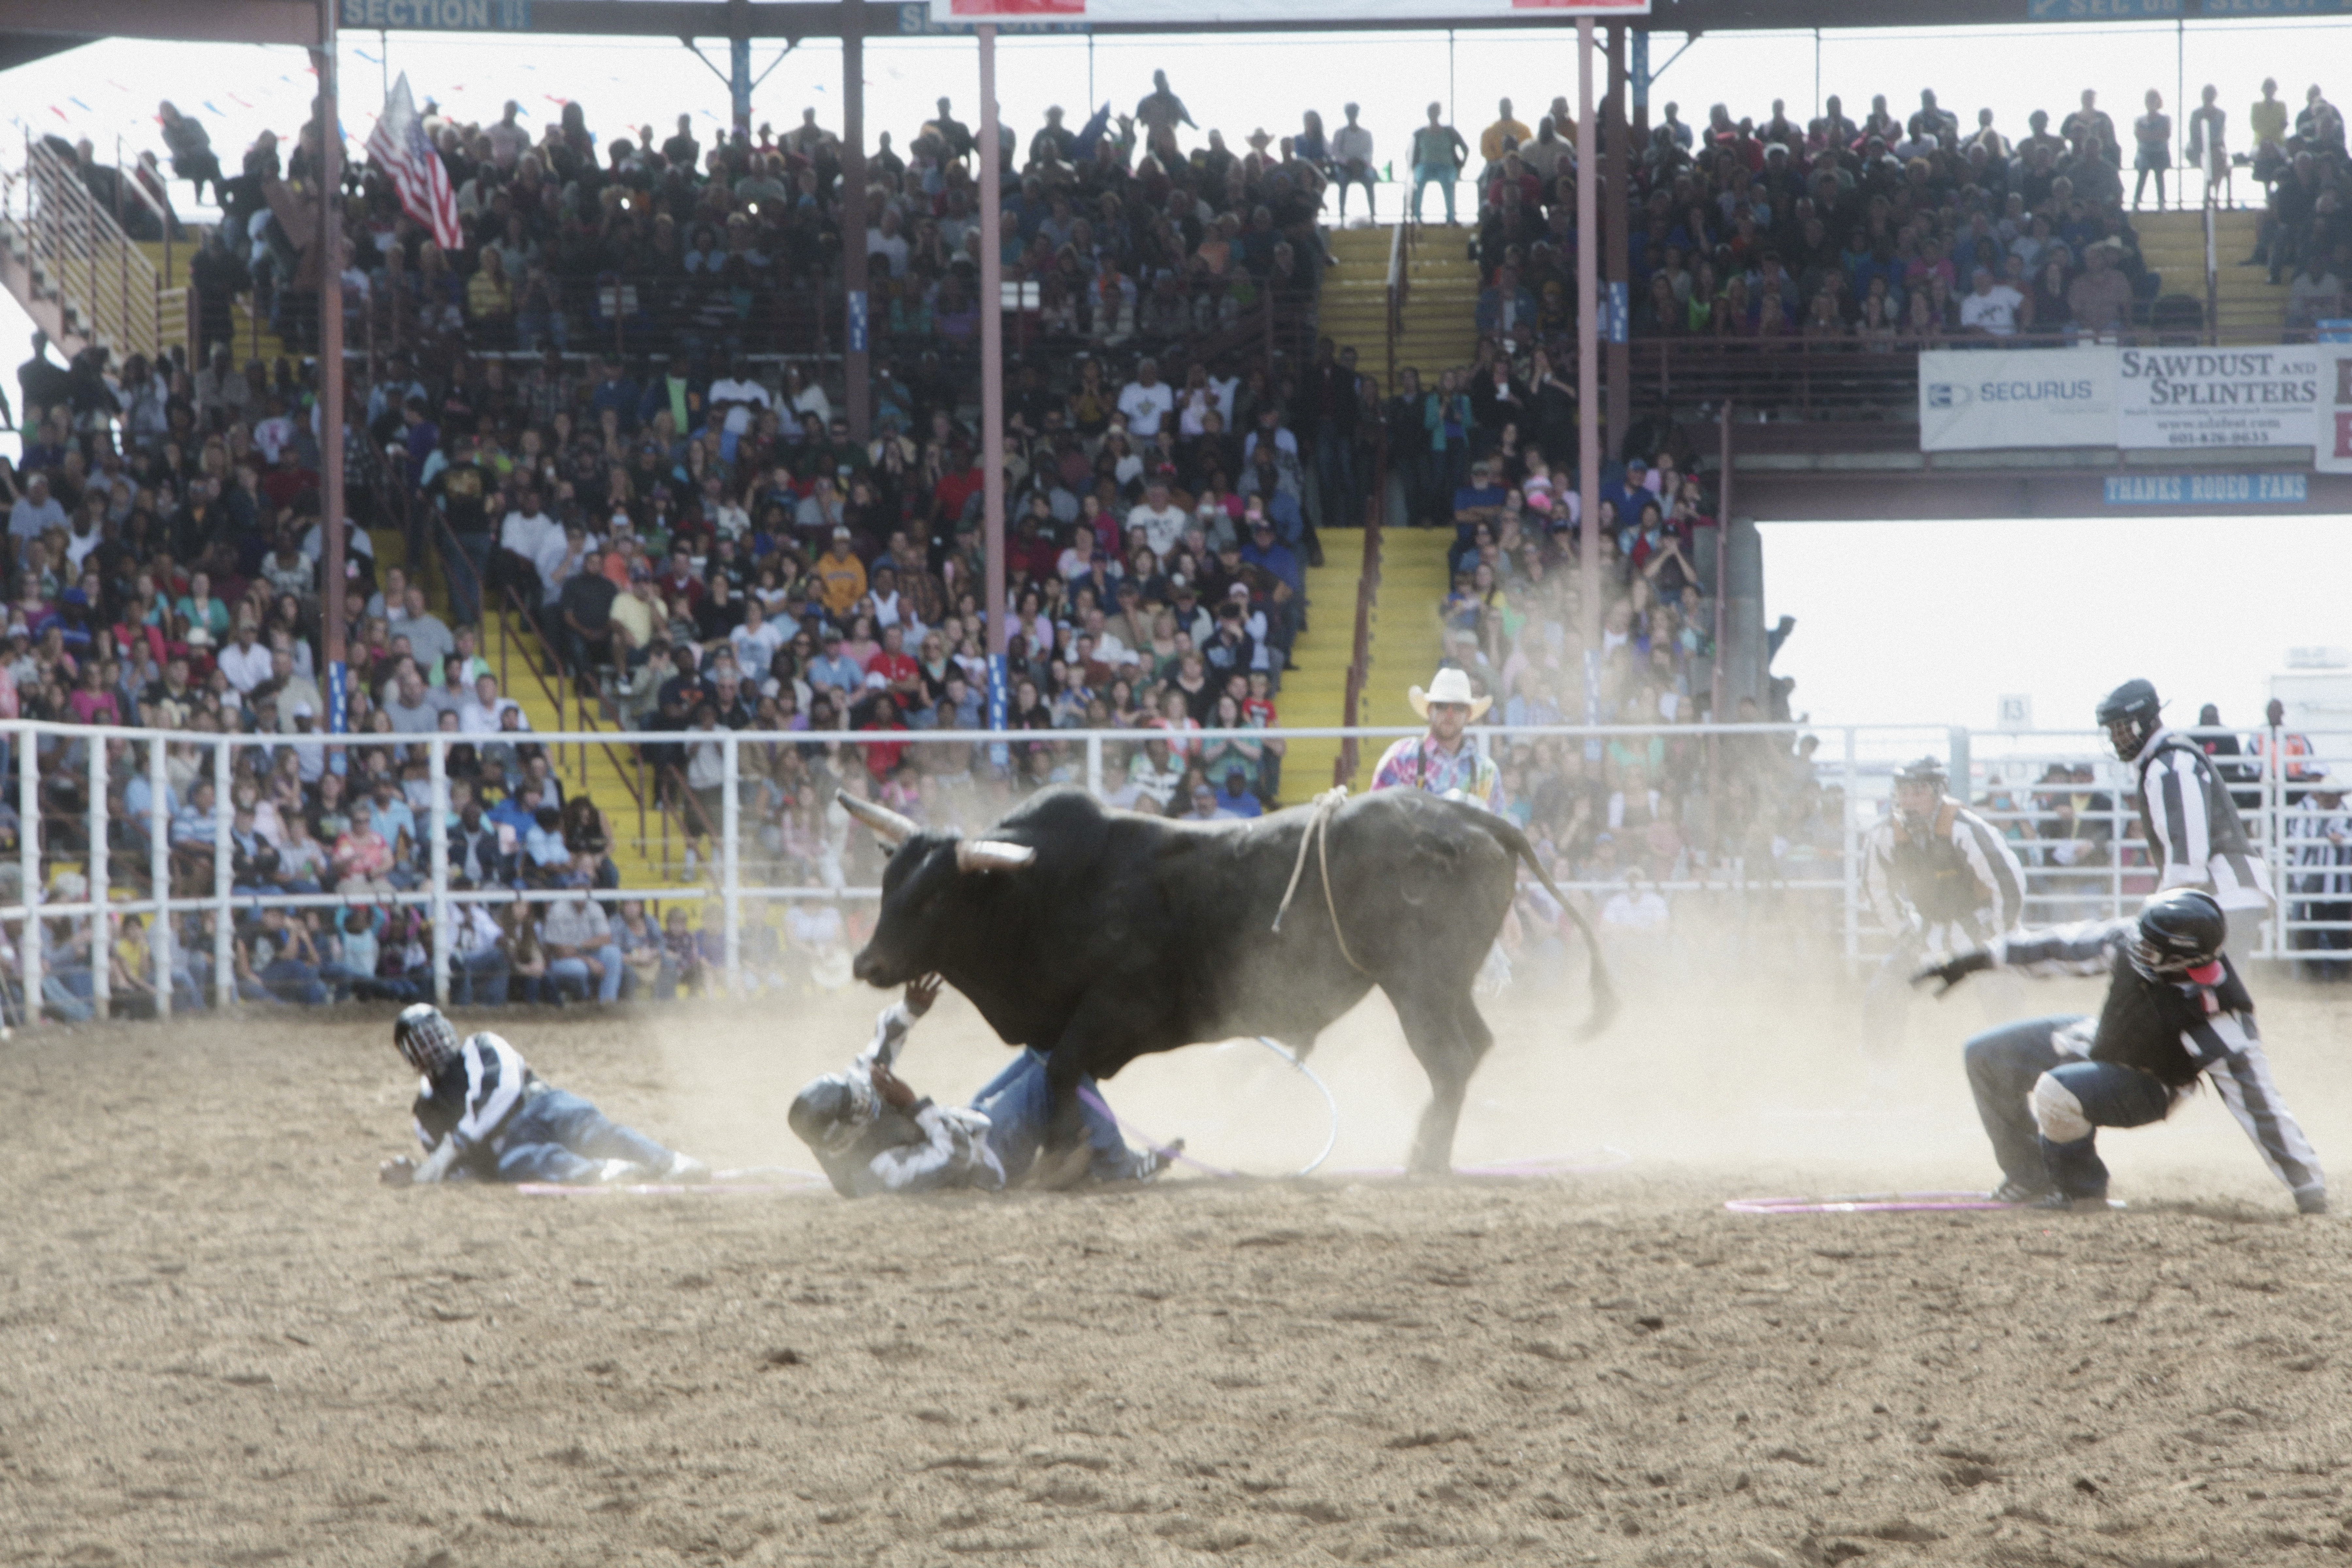 BMA Stories | Louisiana State Penitentiary's Rodeo: A